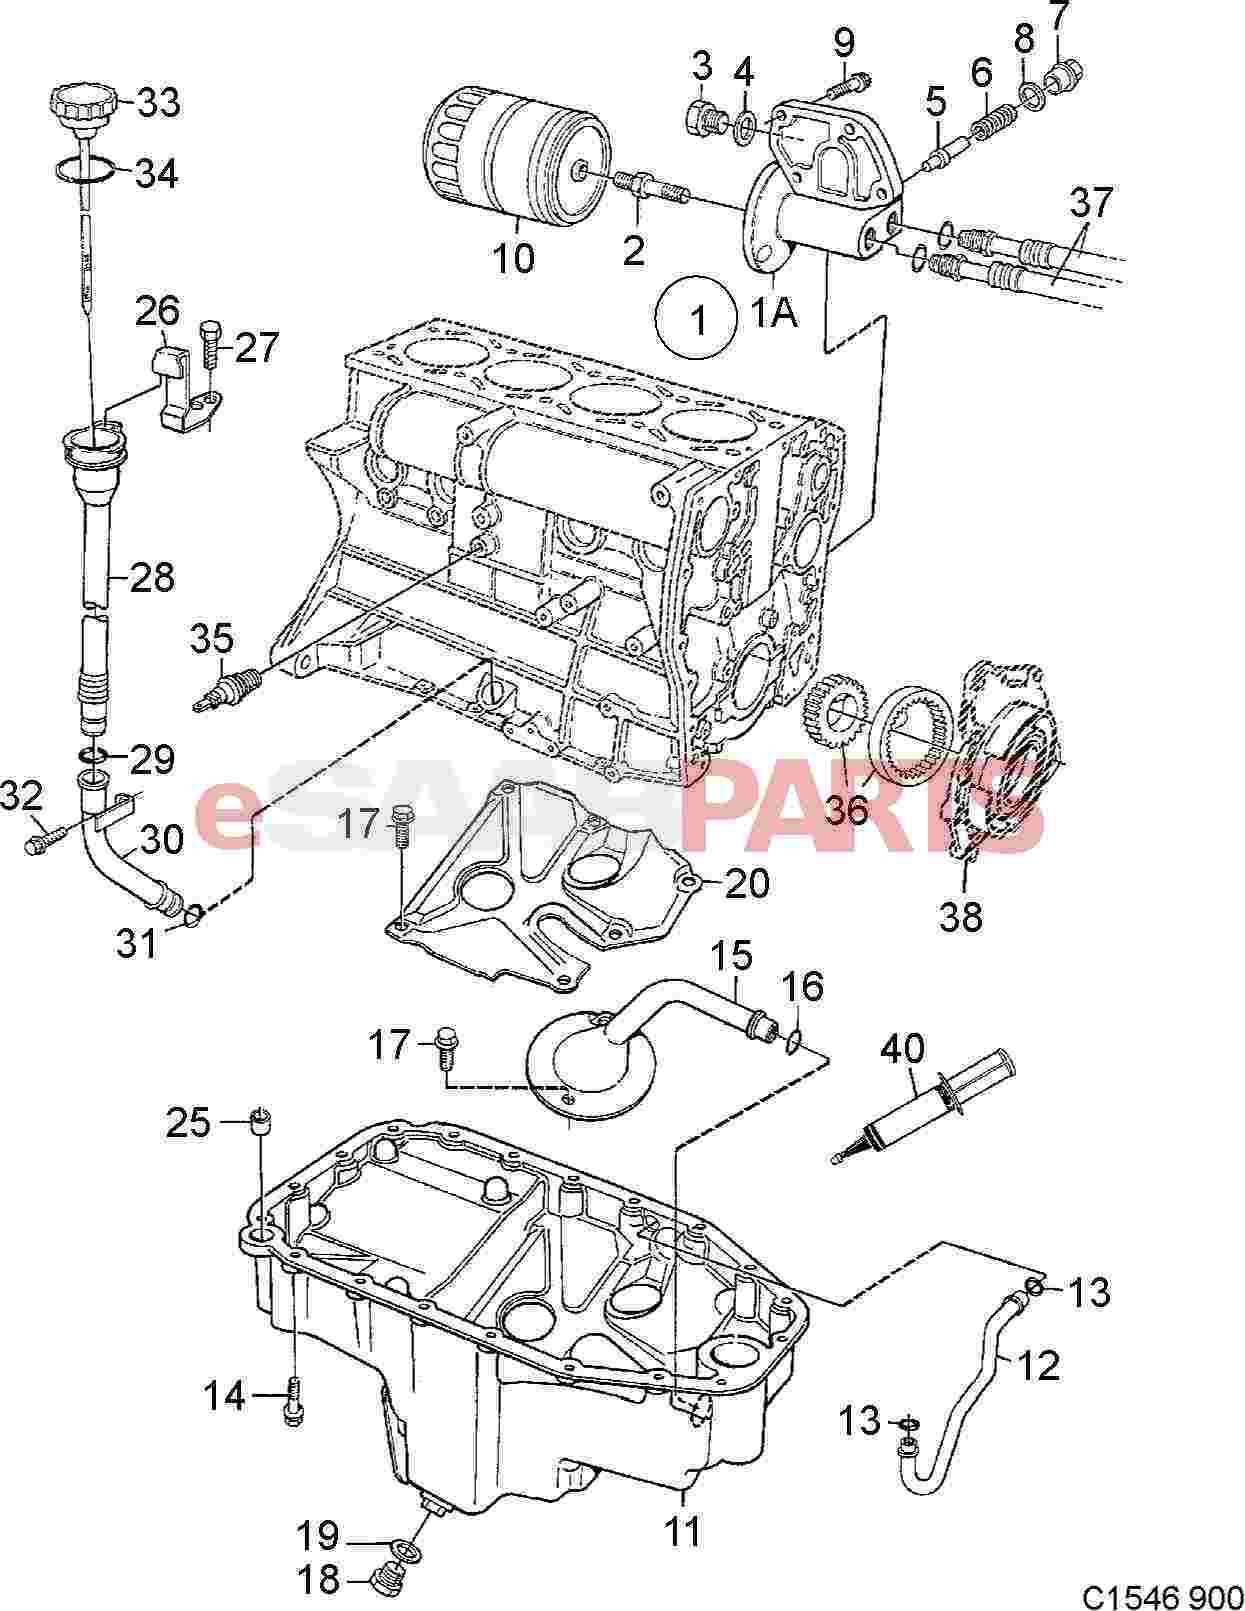 hight resolution of firing order diagram for 2001 toyota camry